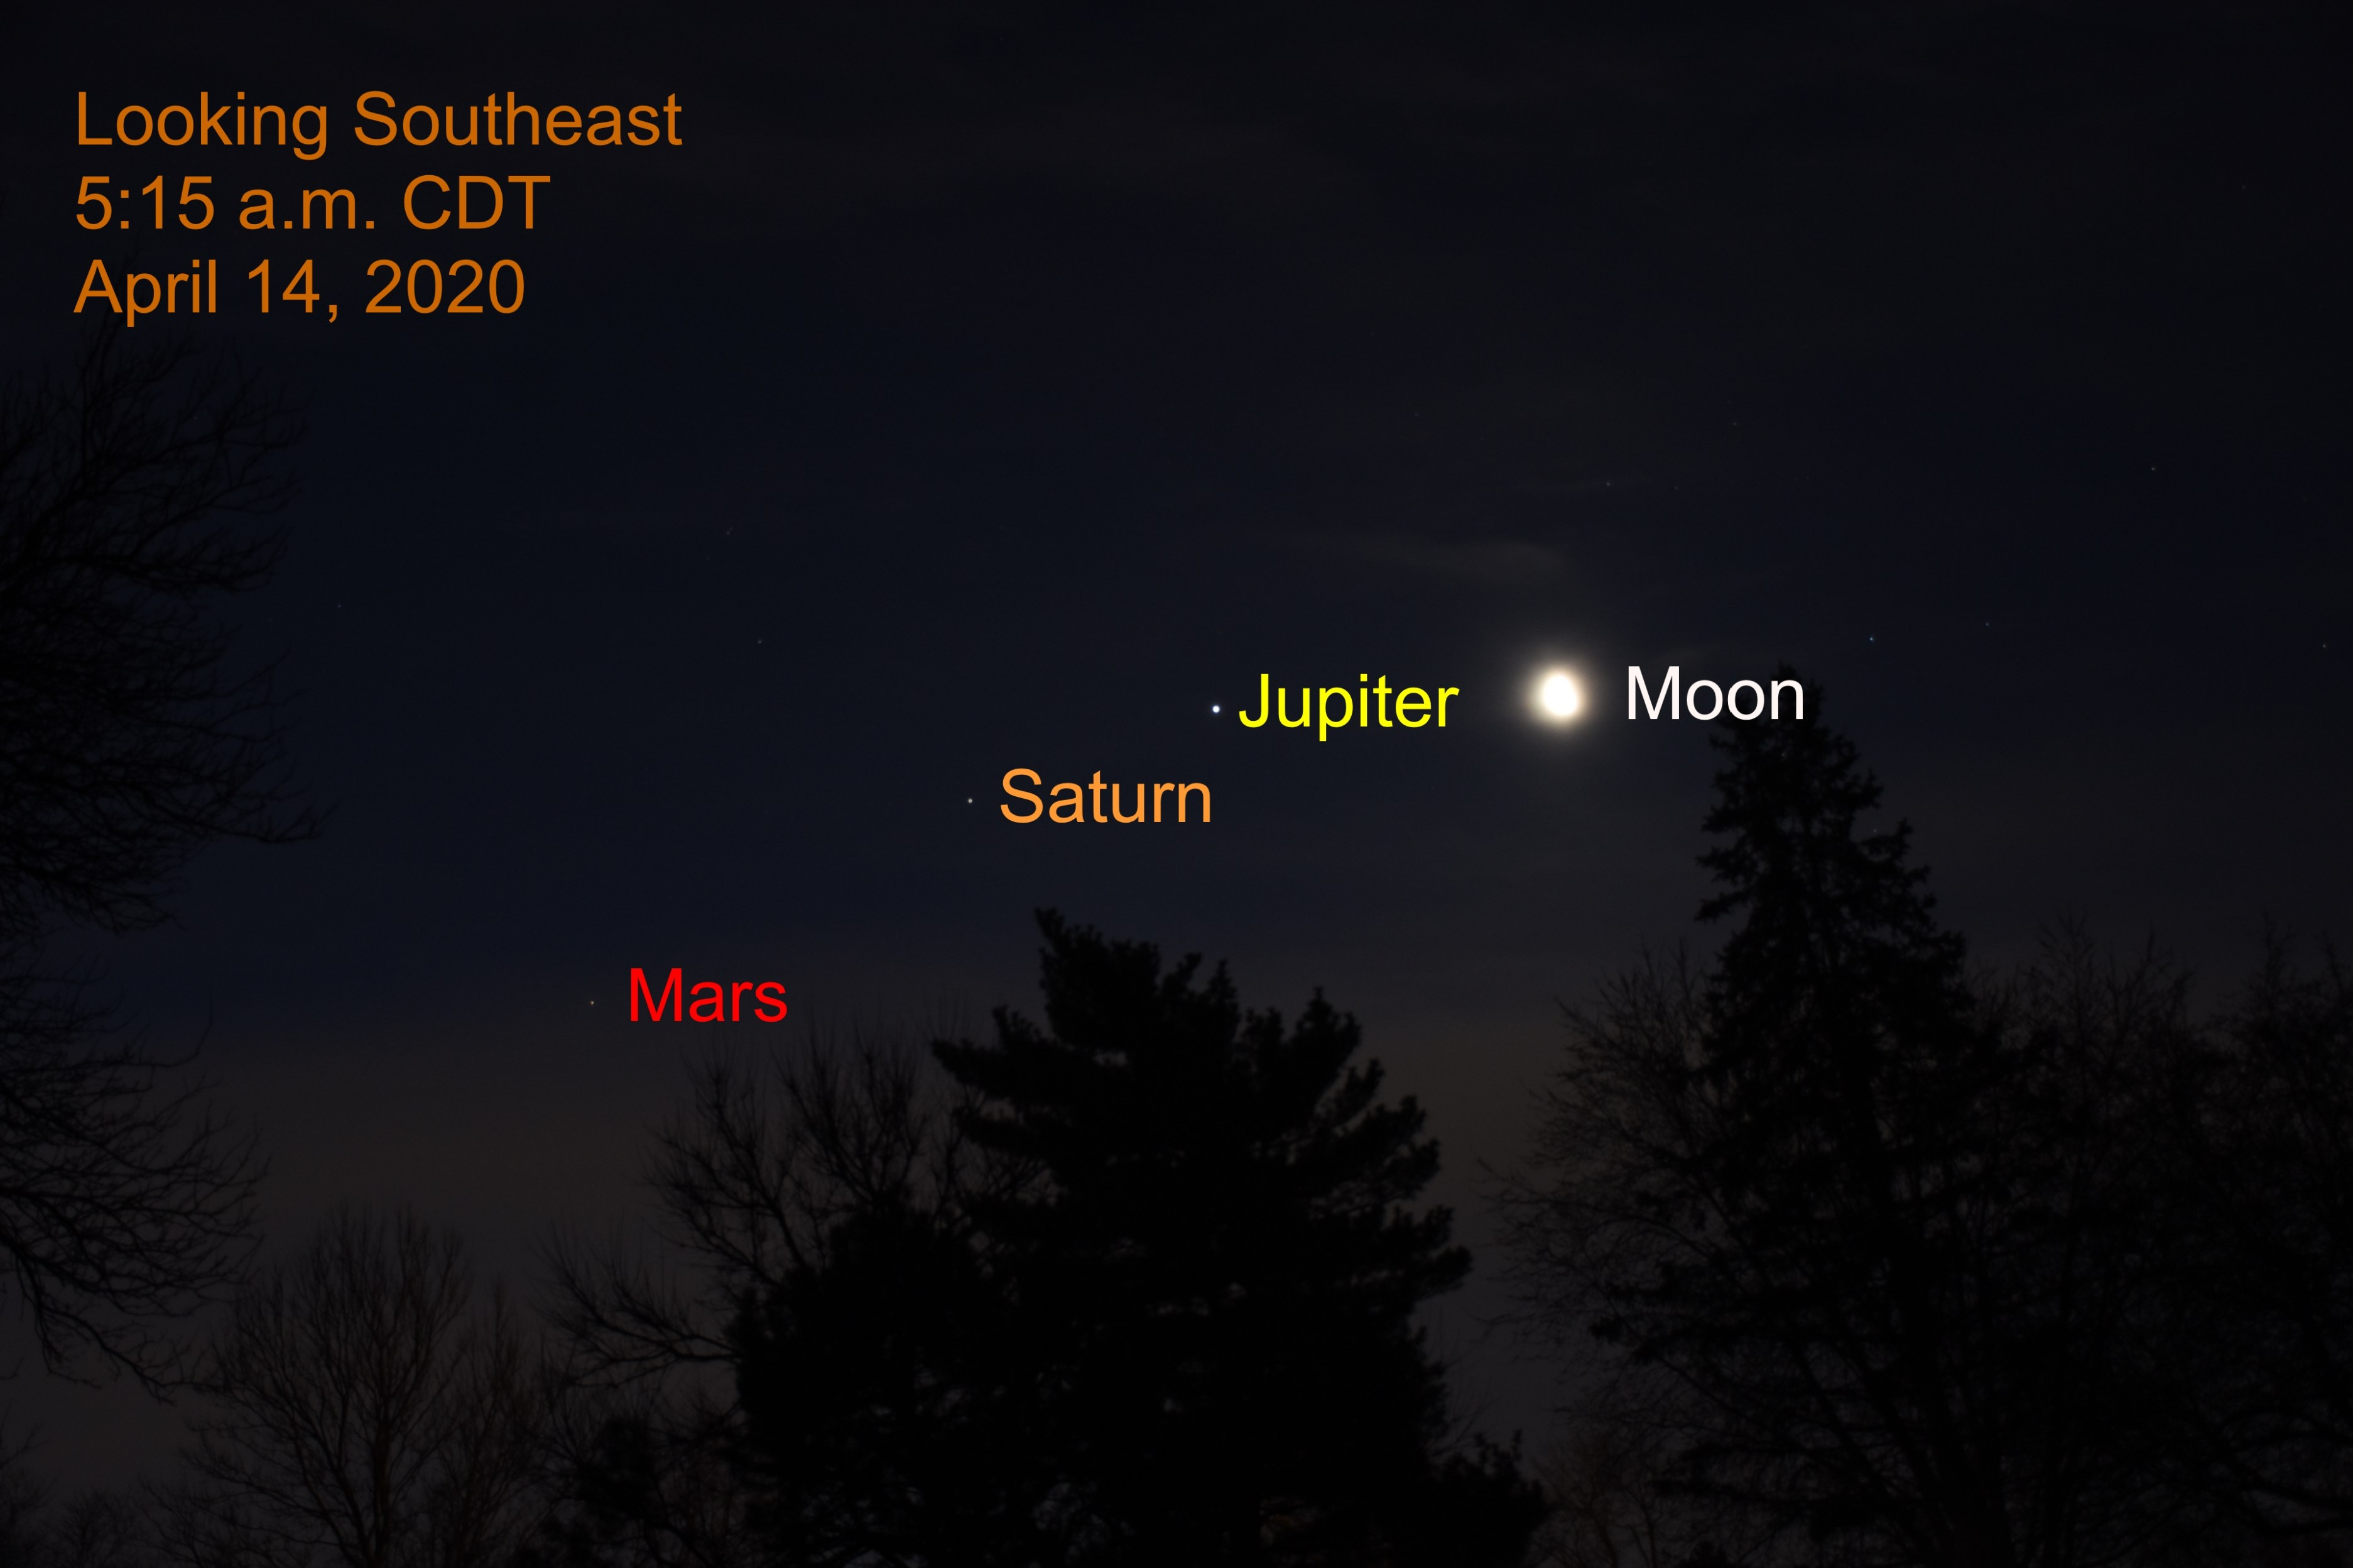 Moon Joins Morning Planets, April 14, 2020